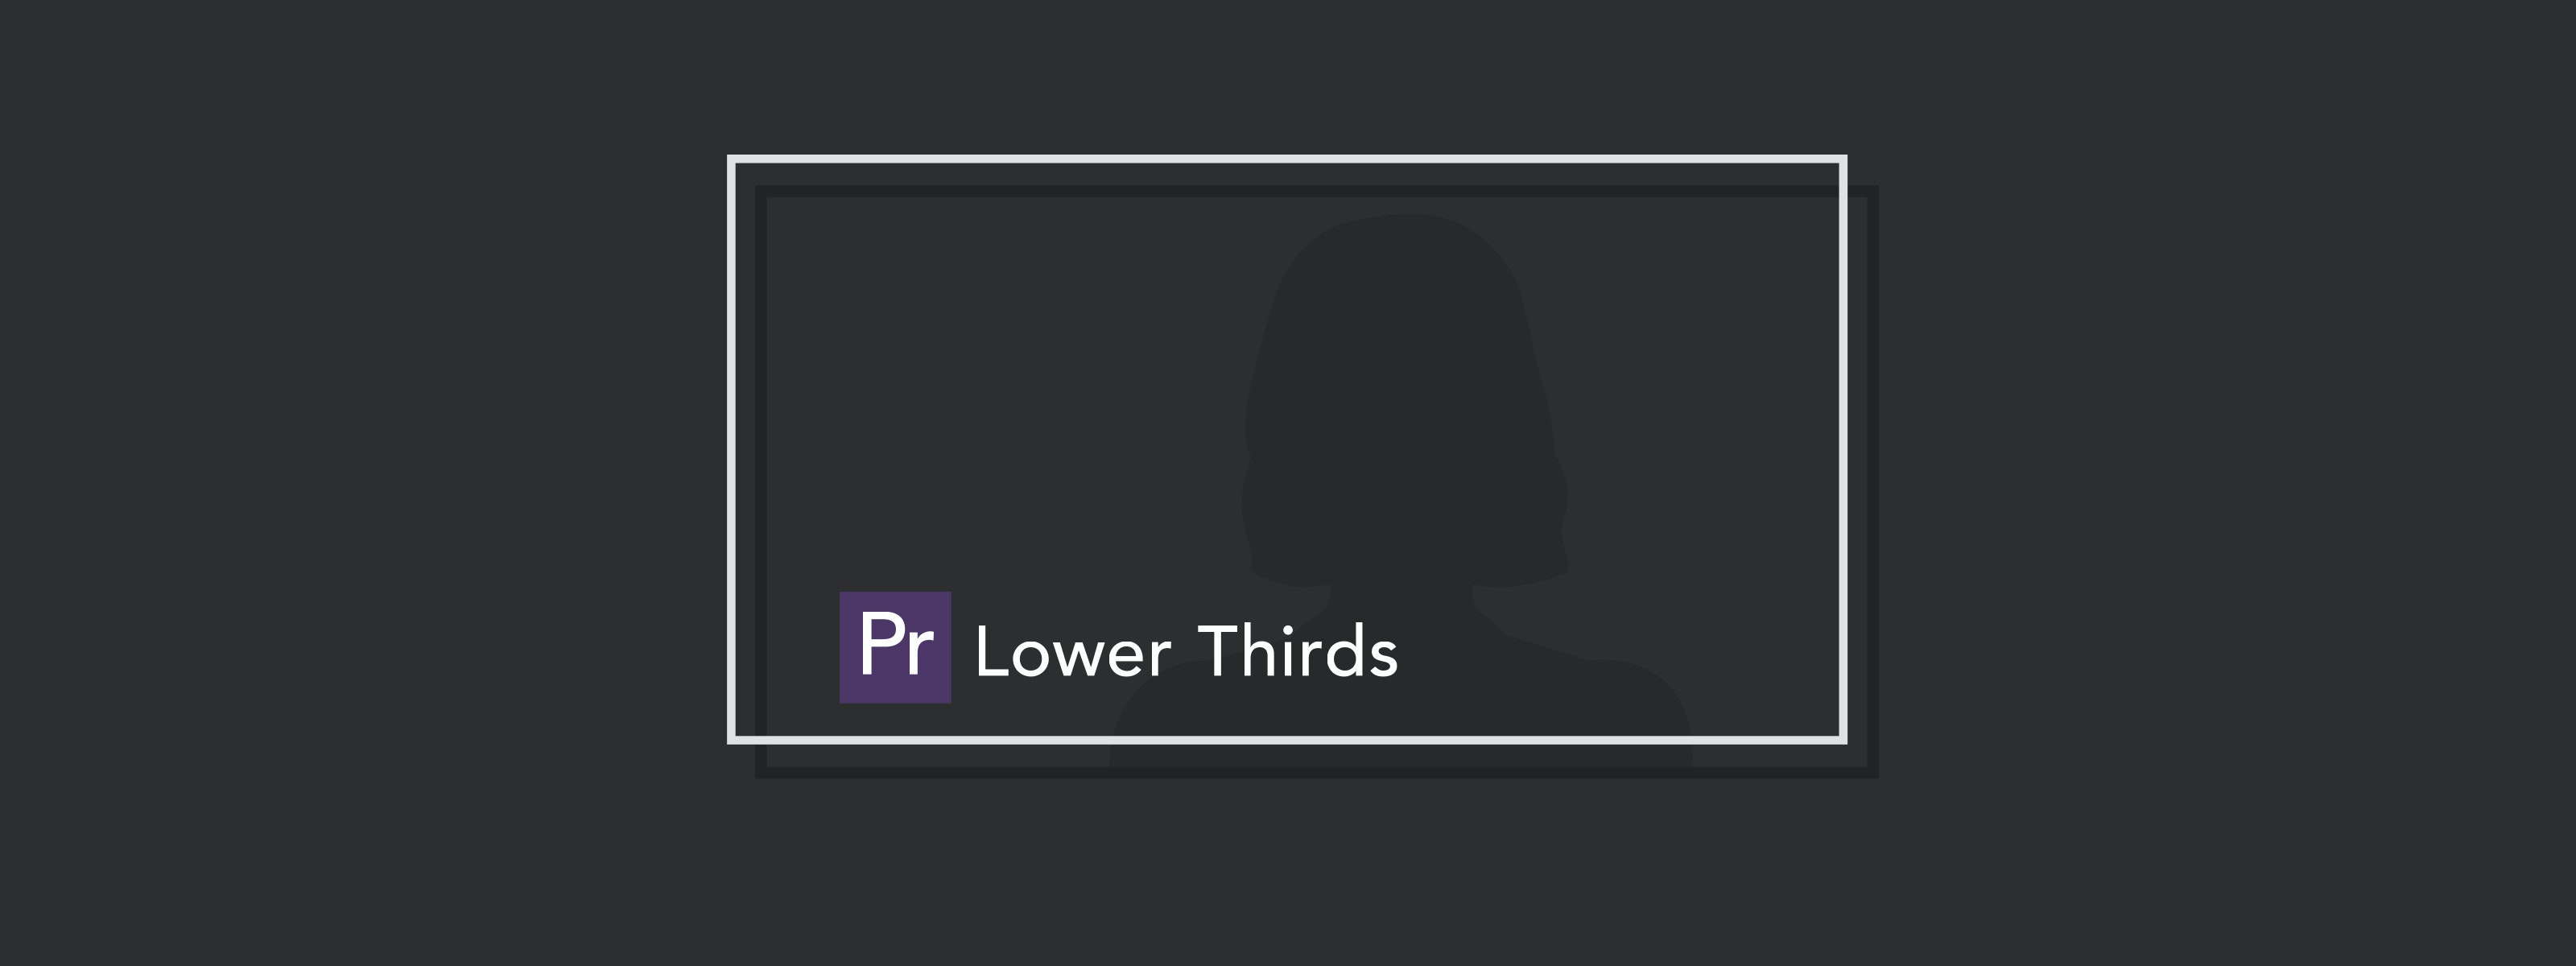 lower thirds graphic